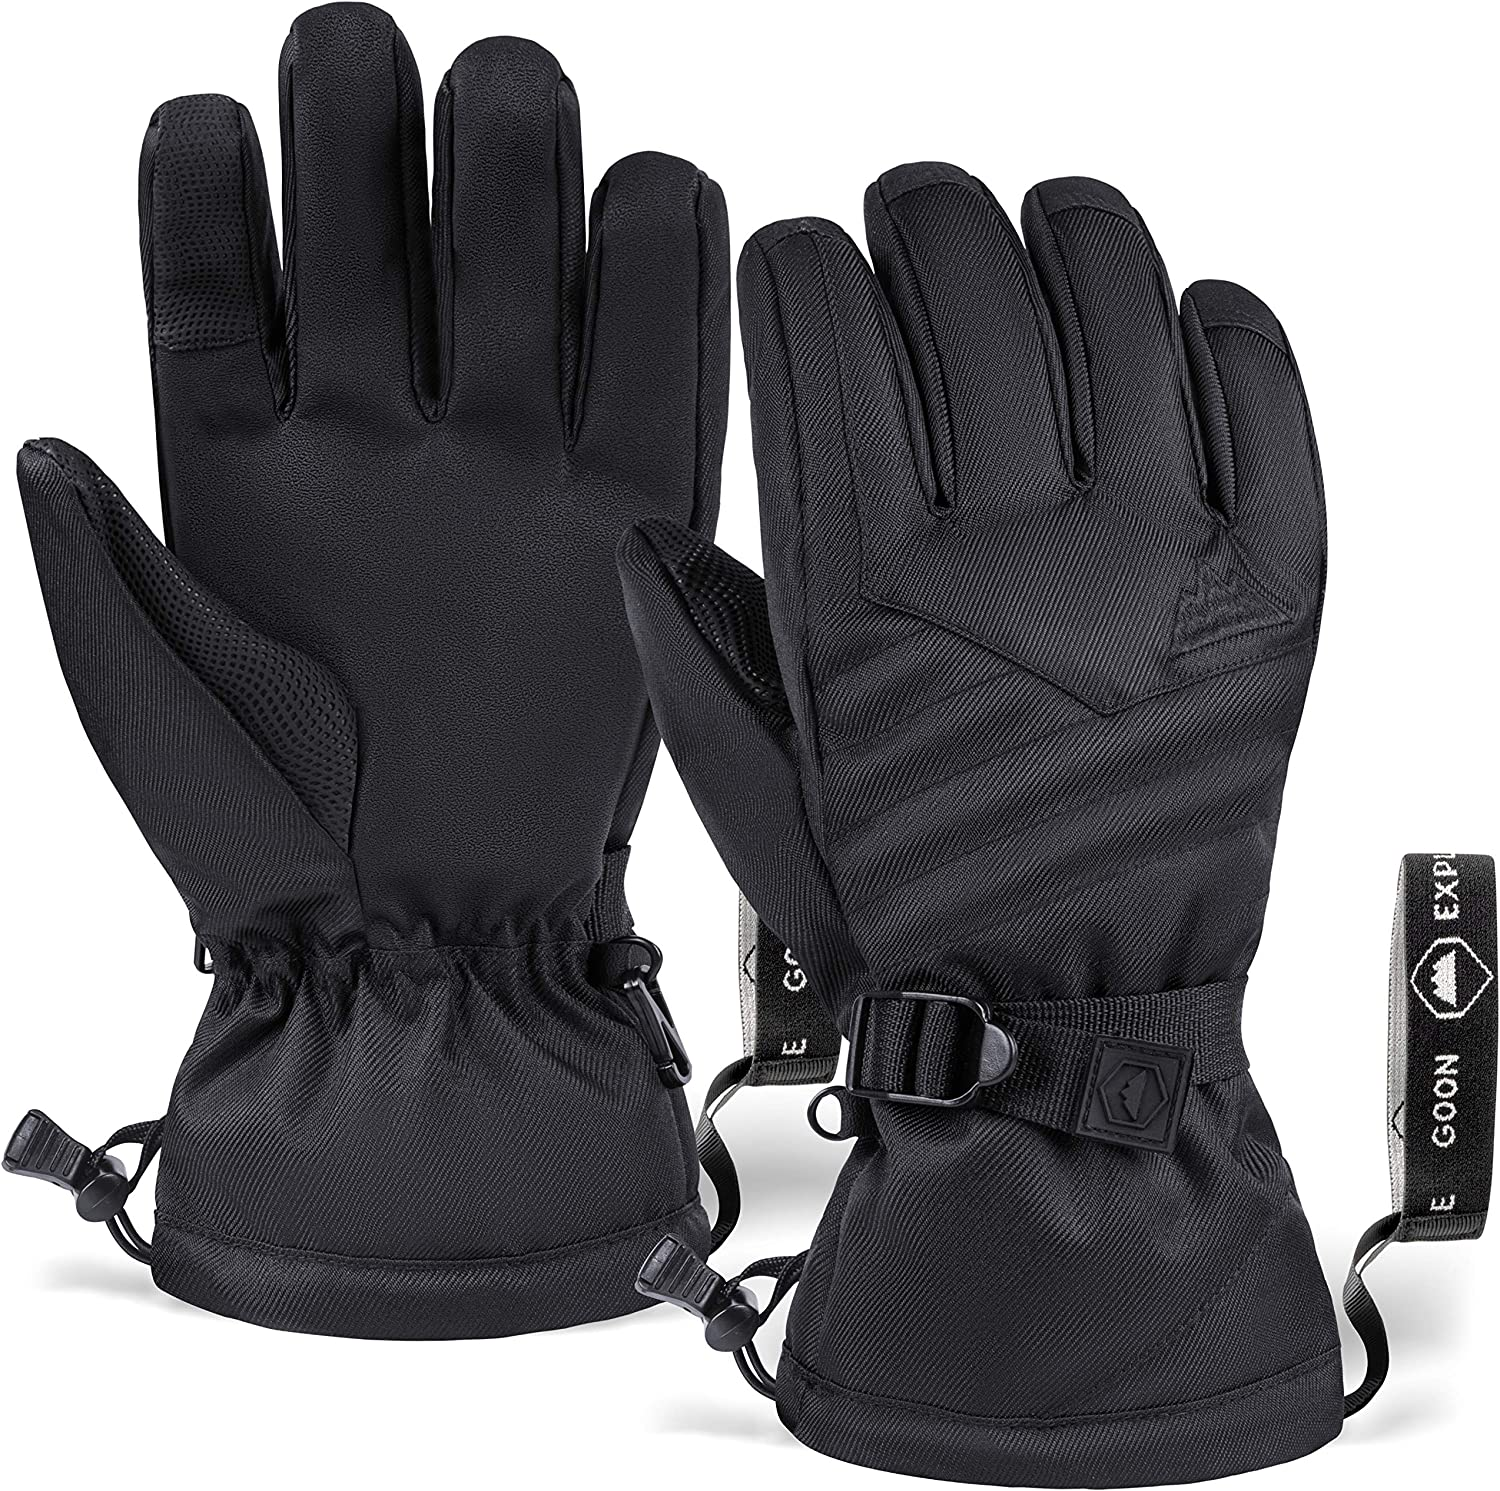 Touch Screen Ski & Snow Gloves - Cold Weather Waterproof Winter Snowboard Gloves for Men & Women - For Skiing & Snowboarding : Sports & Outdoors